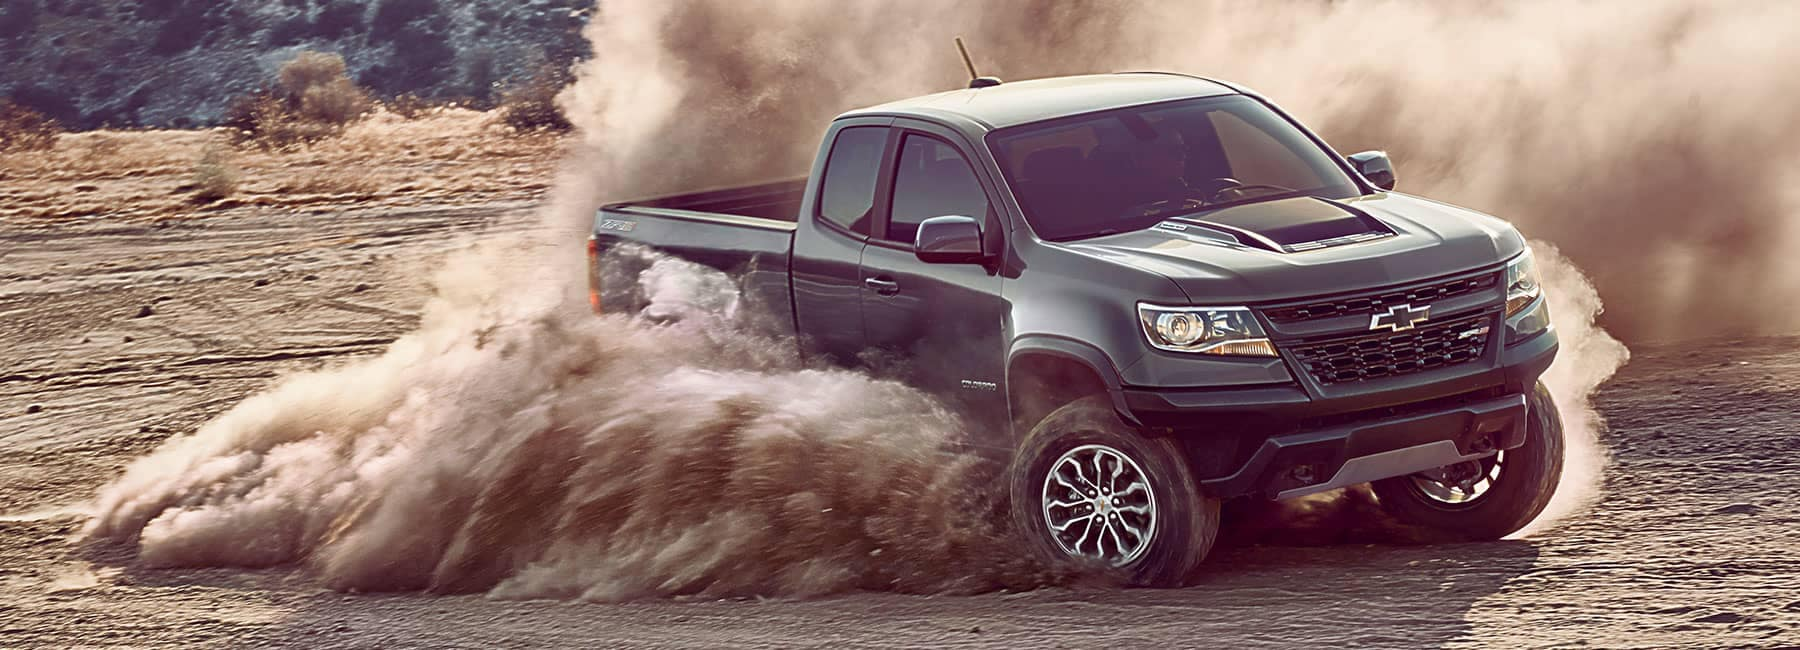 Chevrolet truck driving on a dirt road